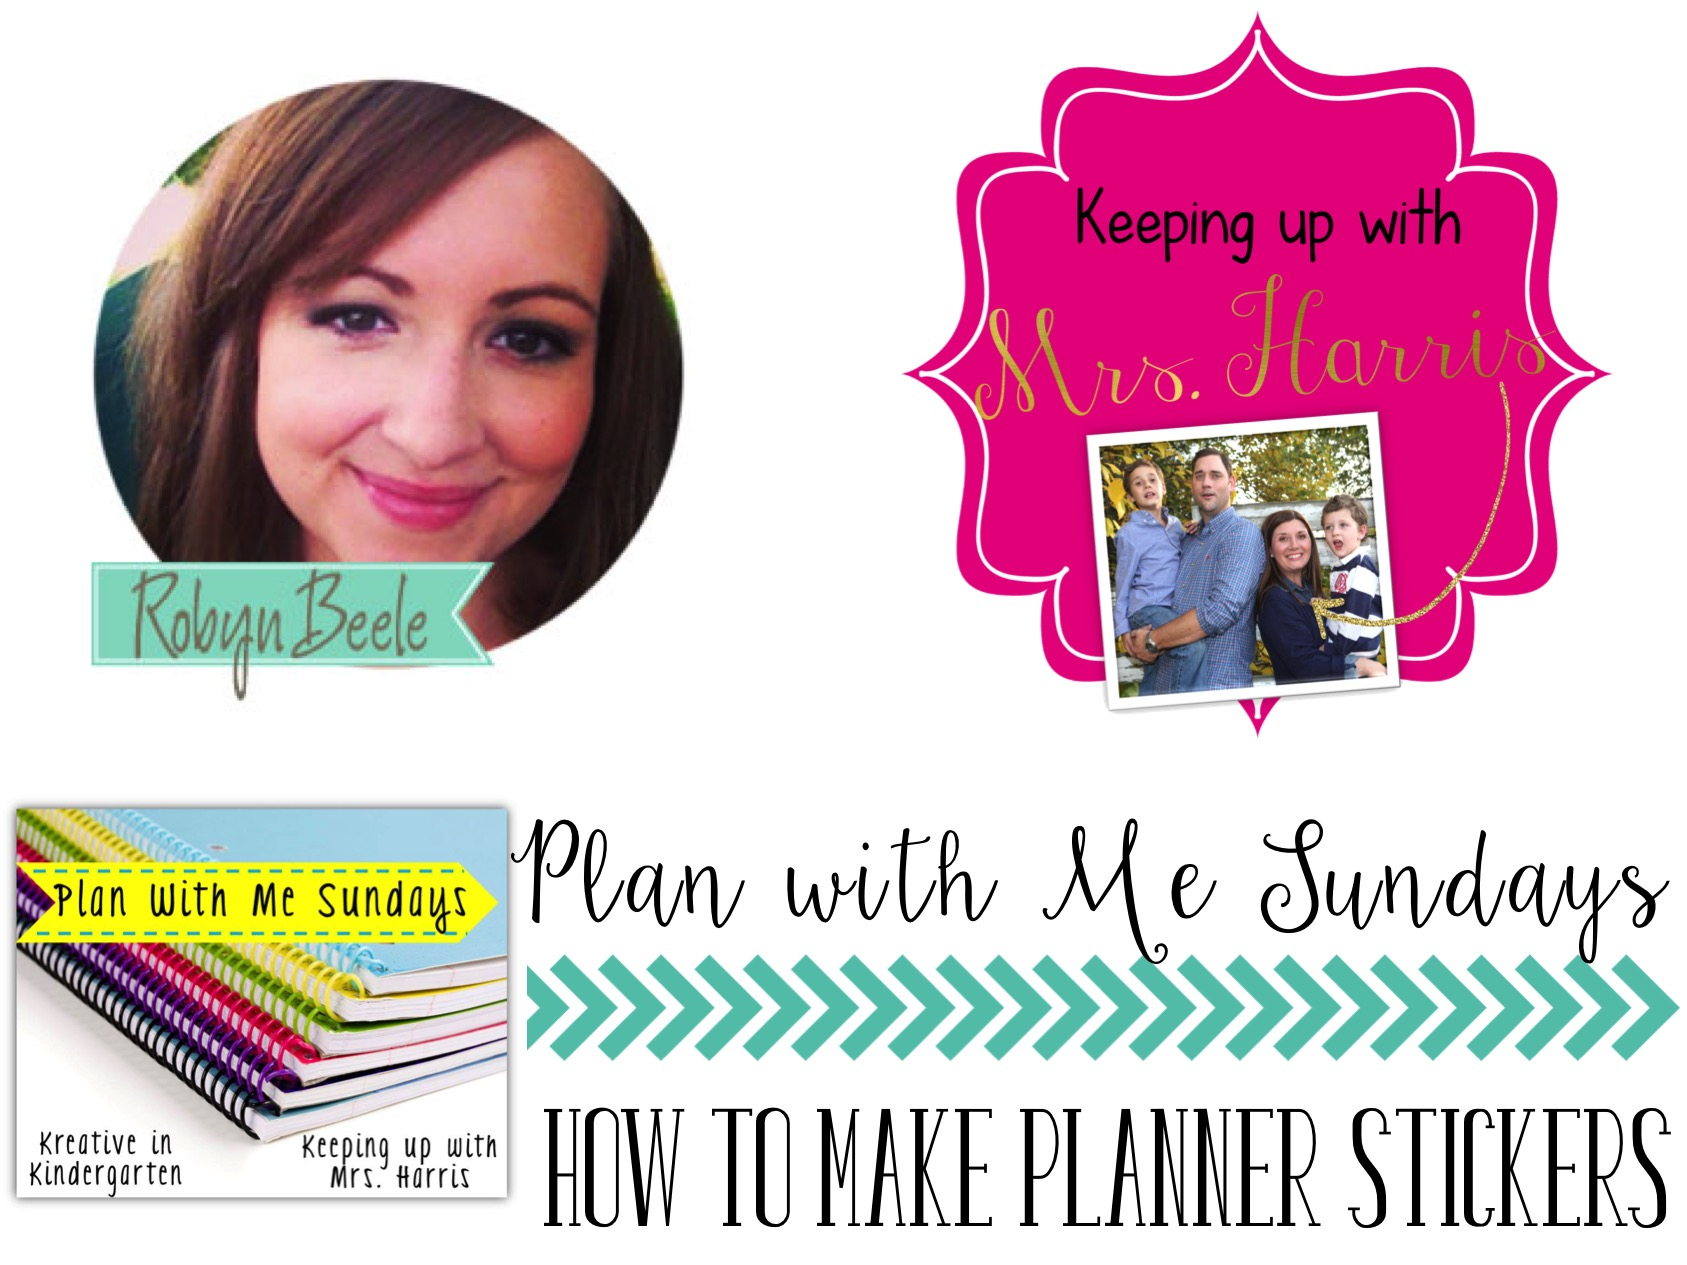 How-to-Make-Planner-Stickers-Keeping-Up-with-Mrs.Harris